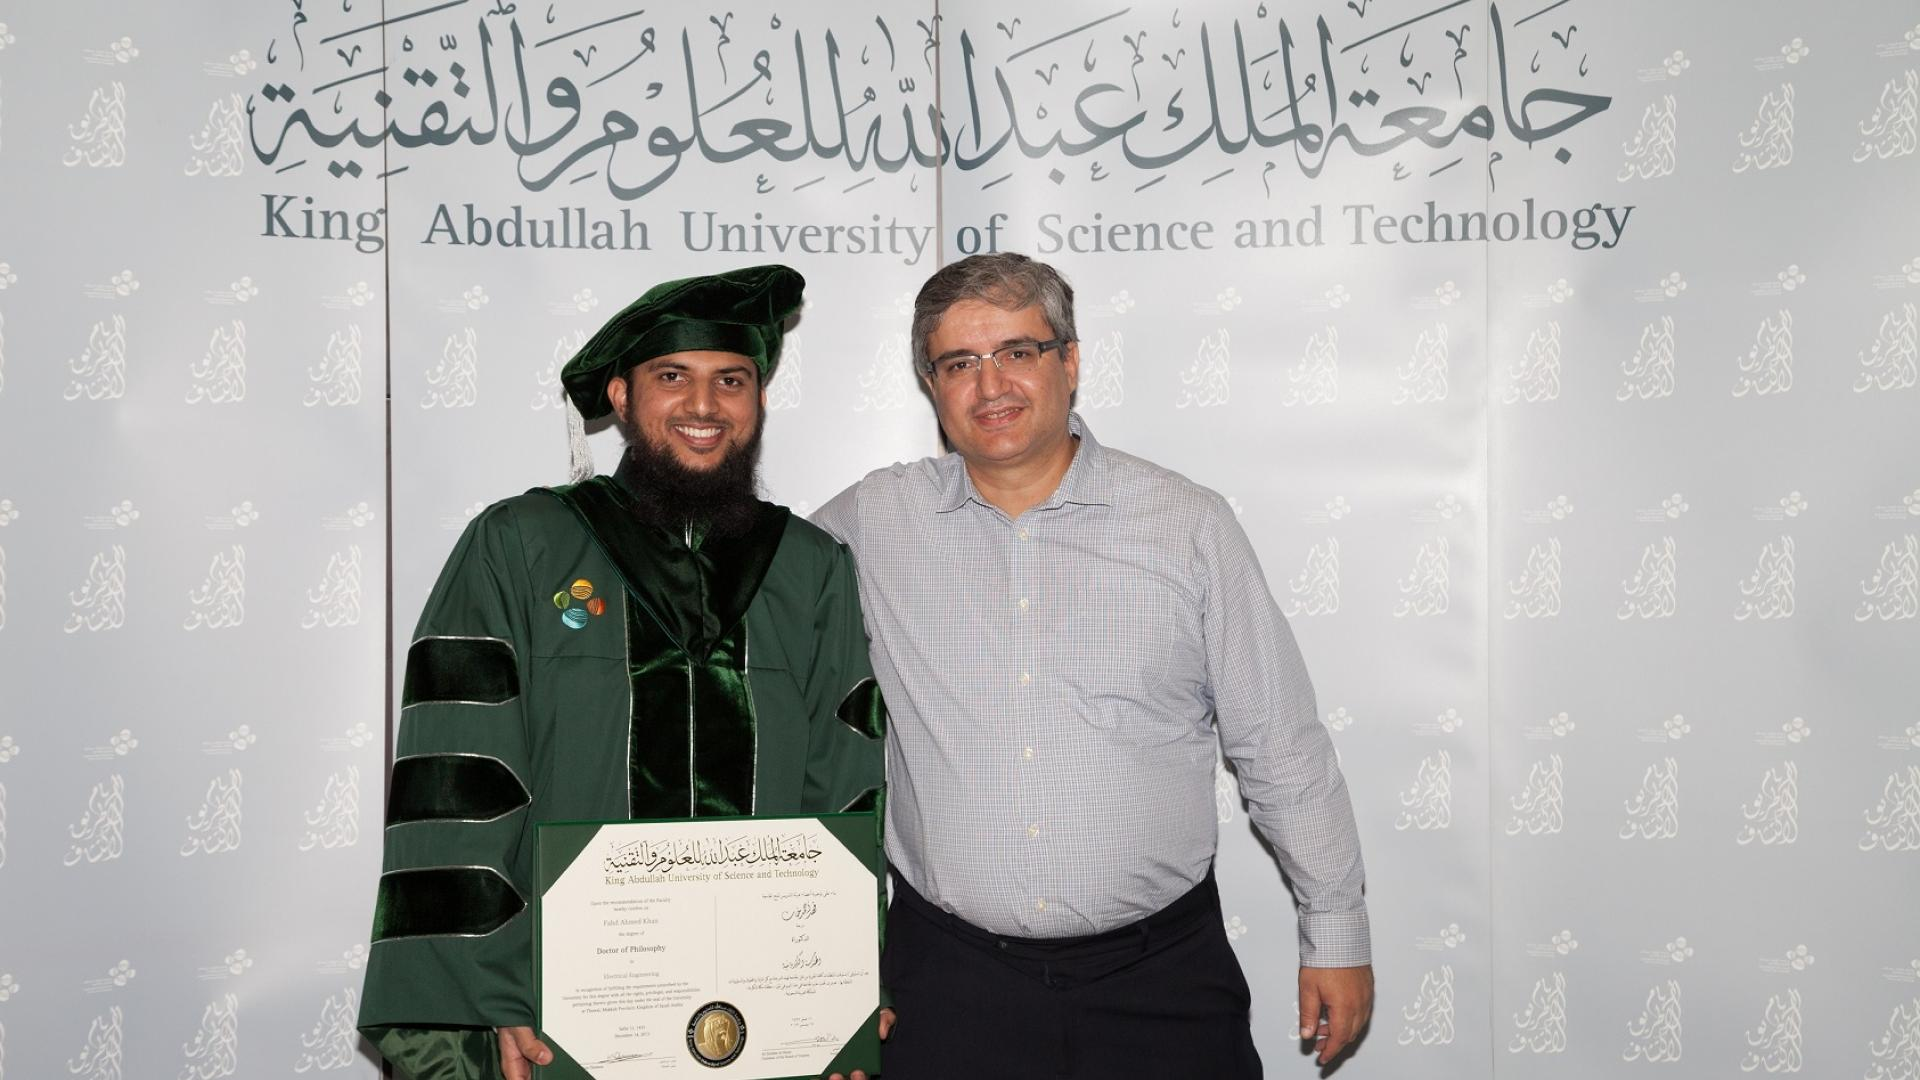 Professor Alouini with Fahd Khan during graduation ceremony2